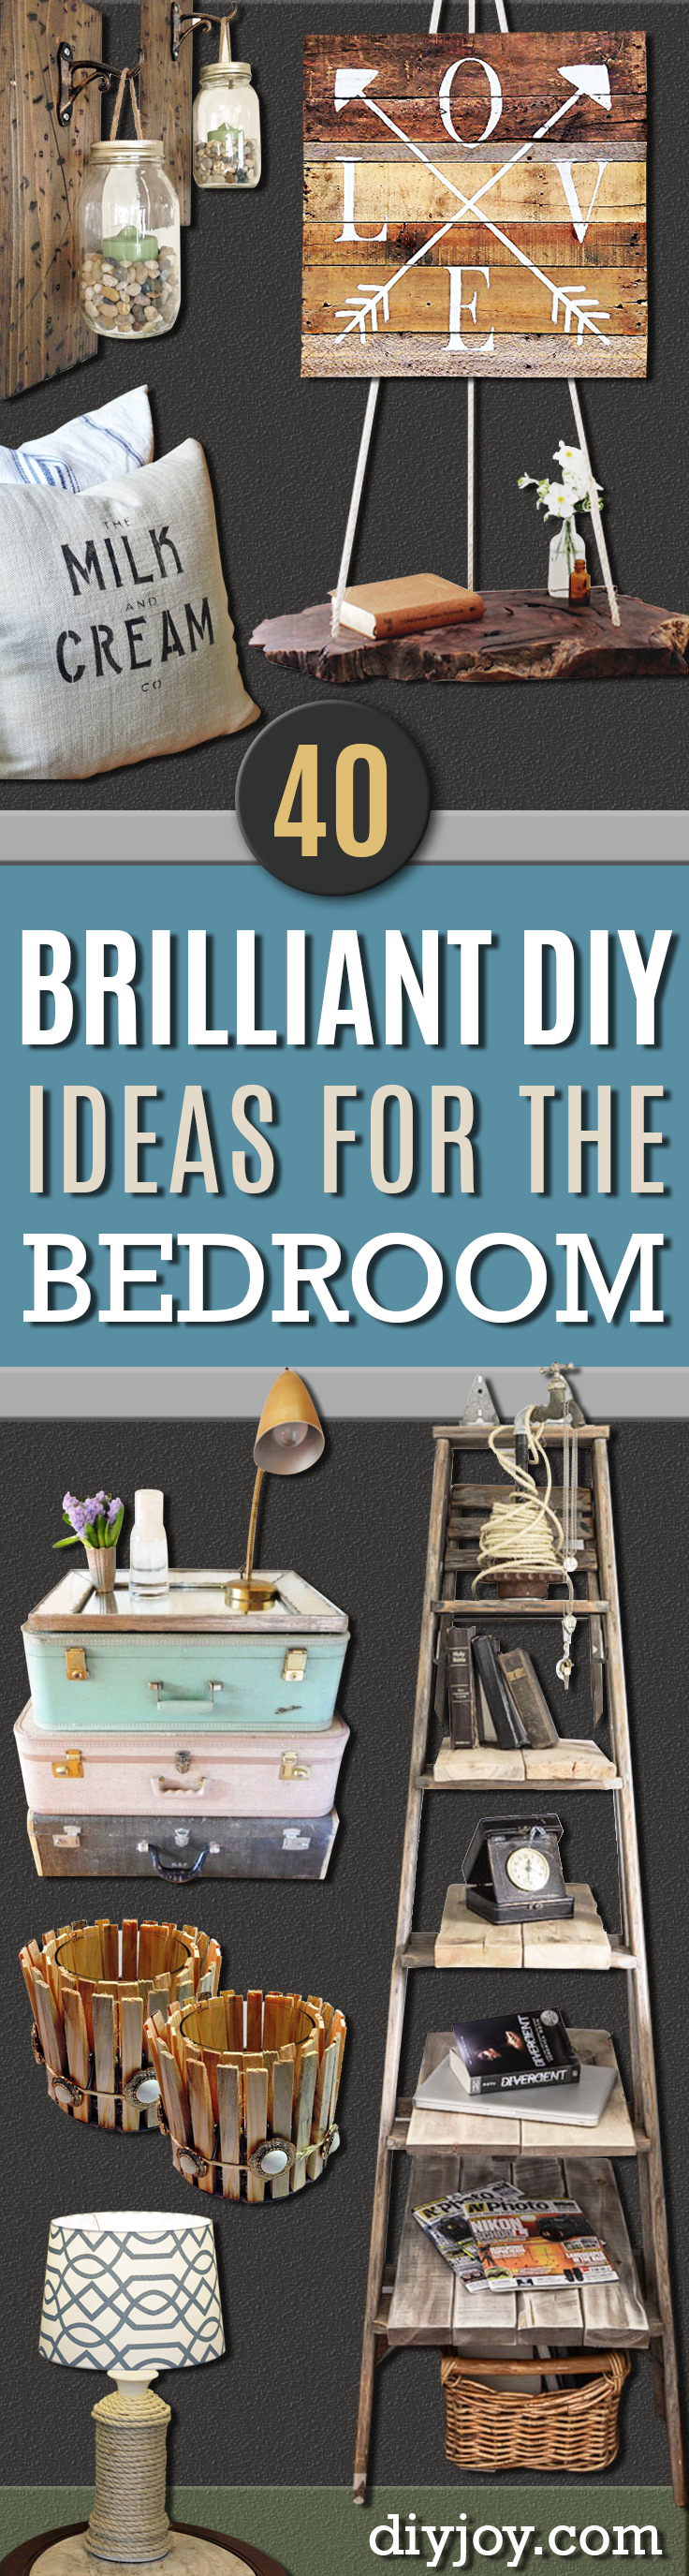 Brilliant DIY Decor Ideas for The Bedroom - Farmhouse Style Furniture and Bed Room Decorating Ideas - Rustic and Vintage Decorating Projects for Bedroom Furniture, Bedding, Wall Art, Headboards, Rugs, Tables and Accessories. Tutorials and Step By Step Instructions http:diyjoy.com/diy-decor-bedroom-ideas